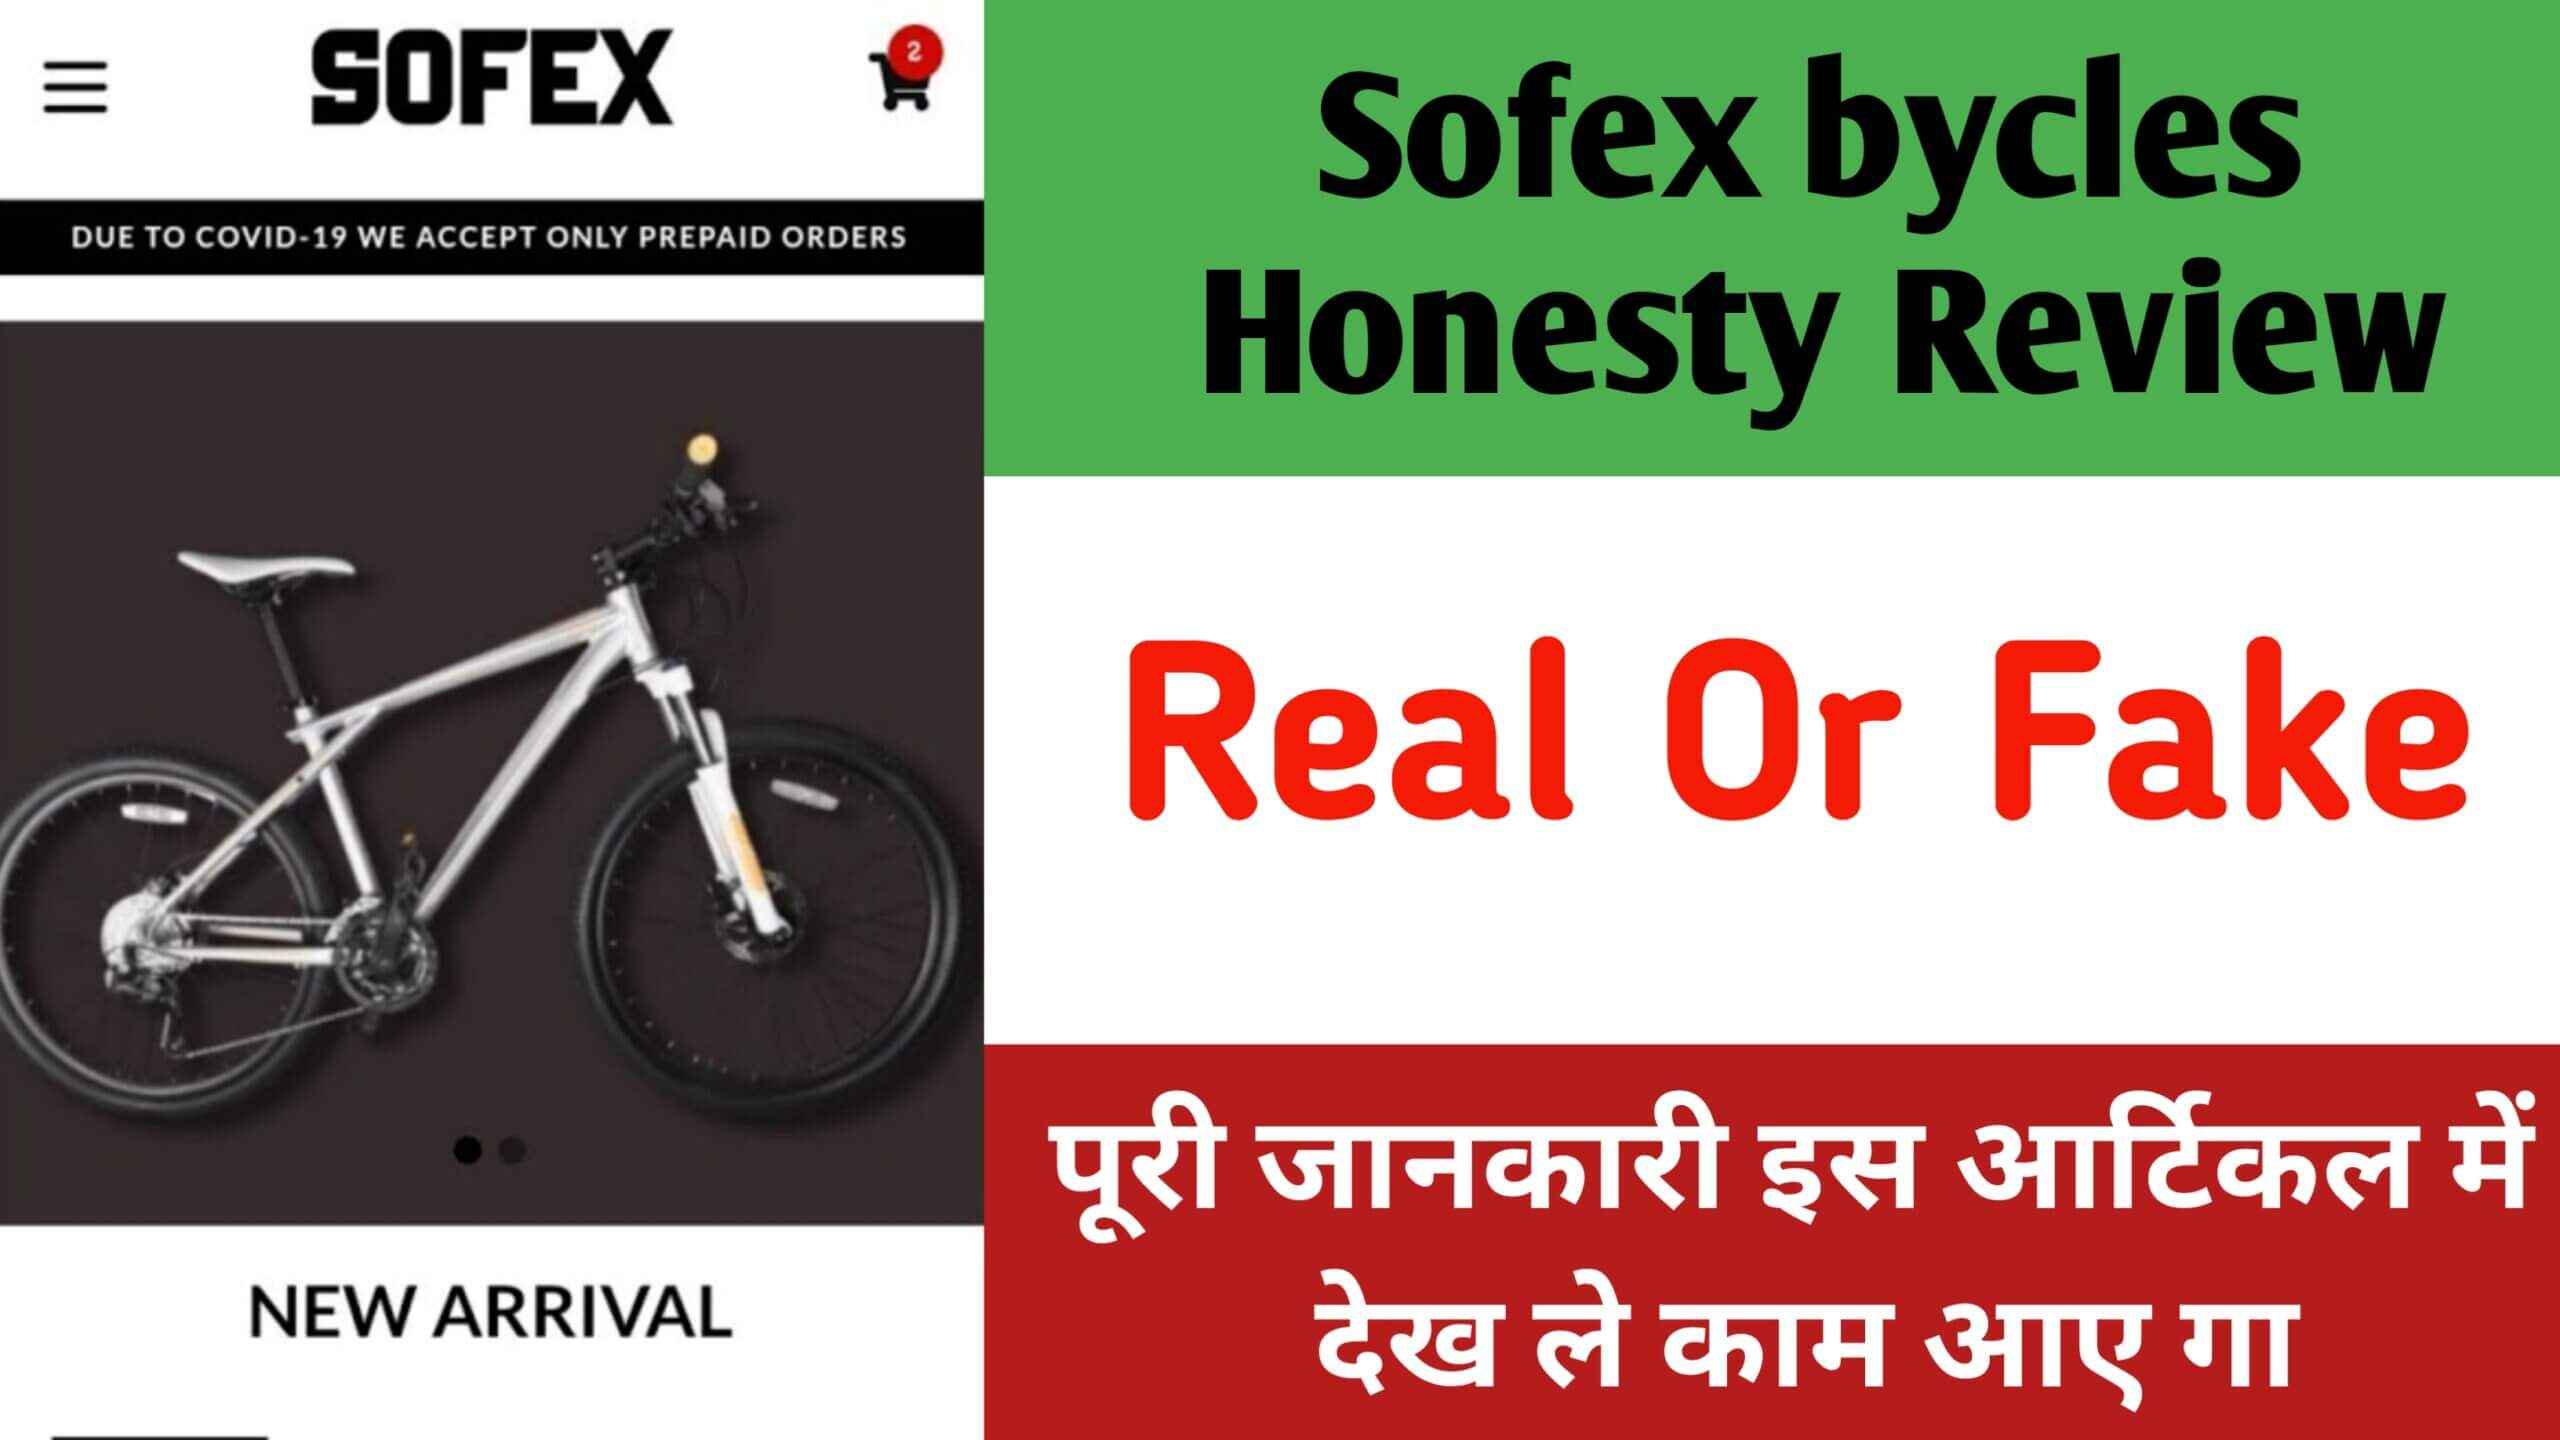 Sofex bycles real or fake